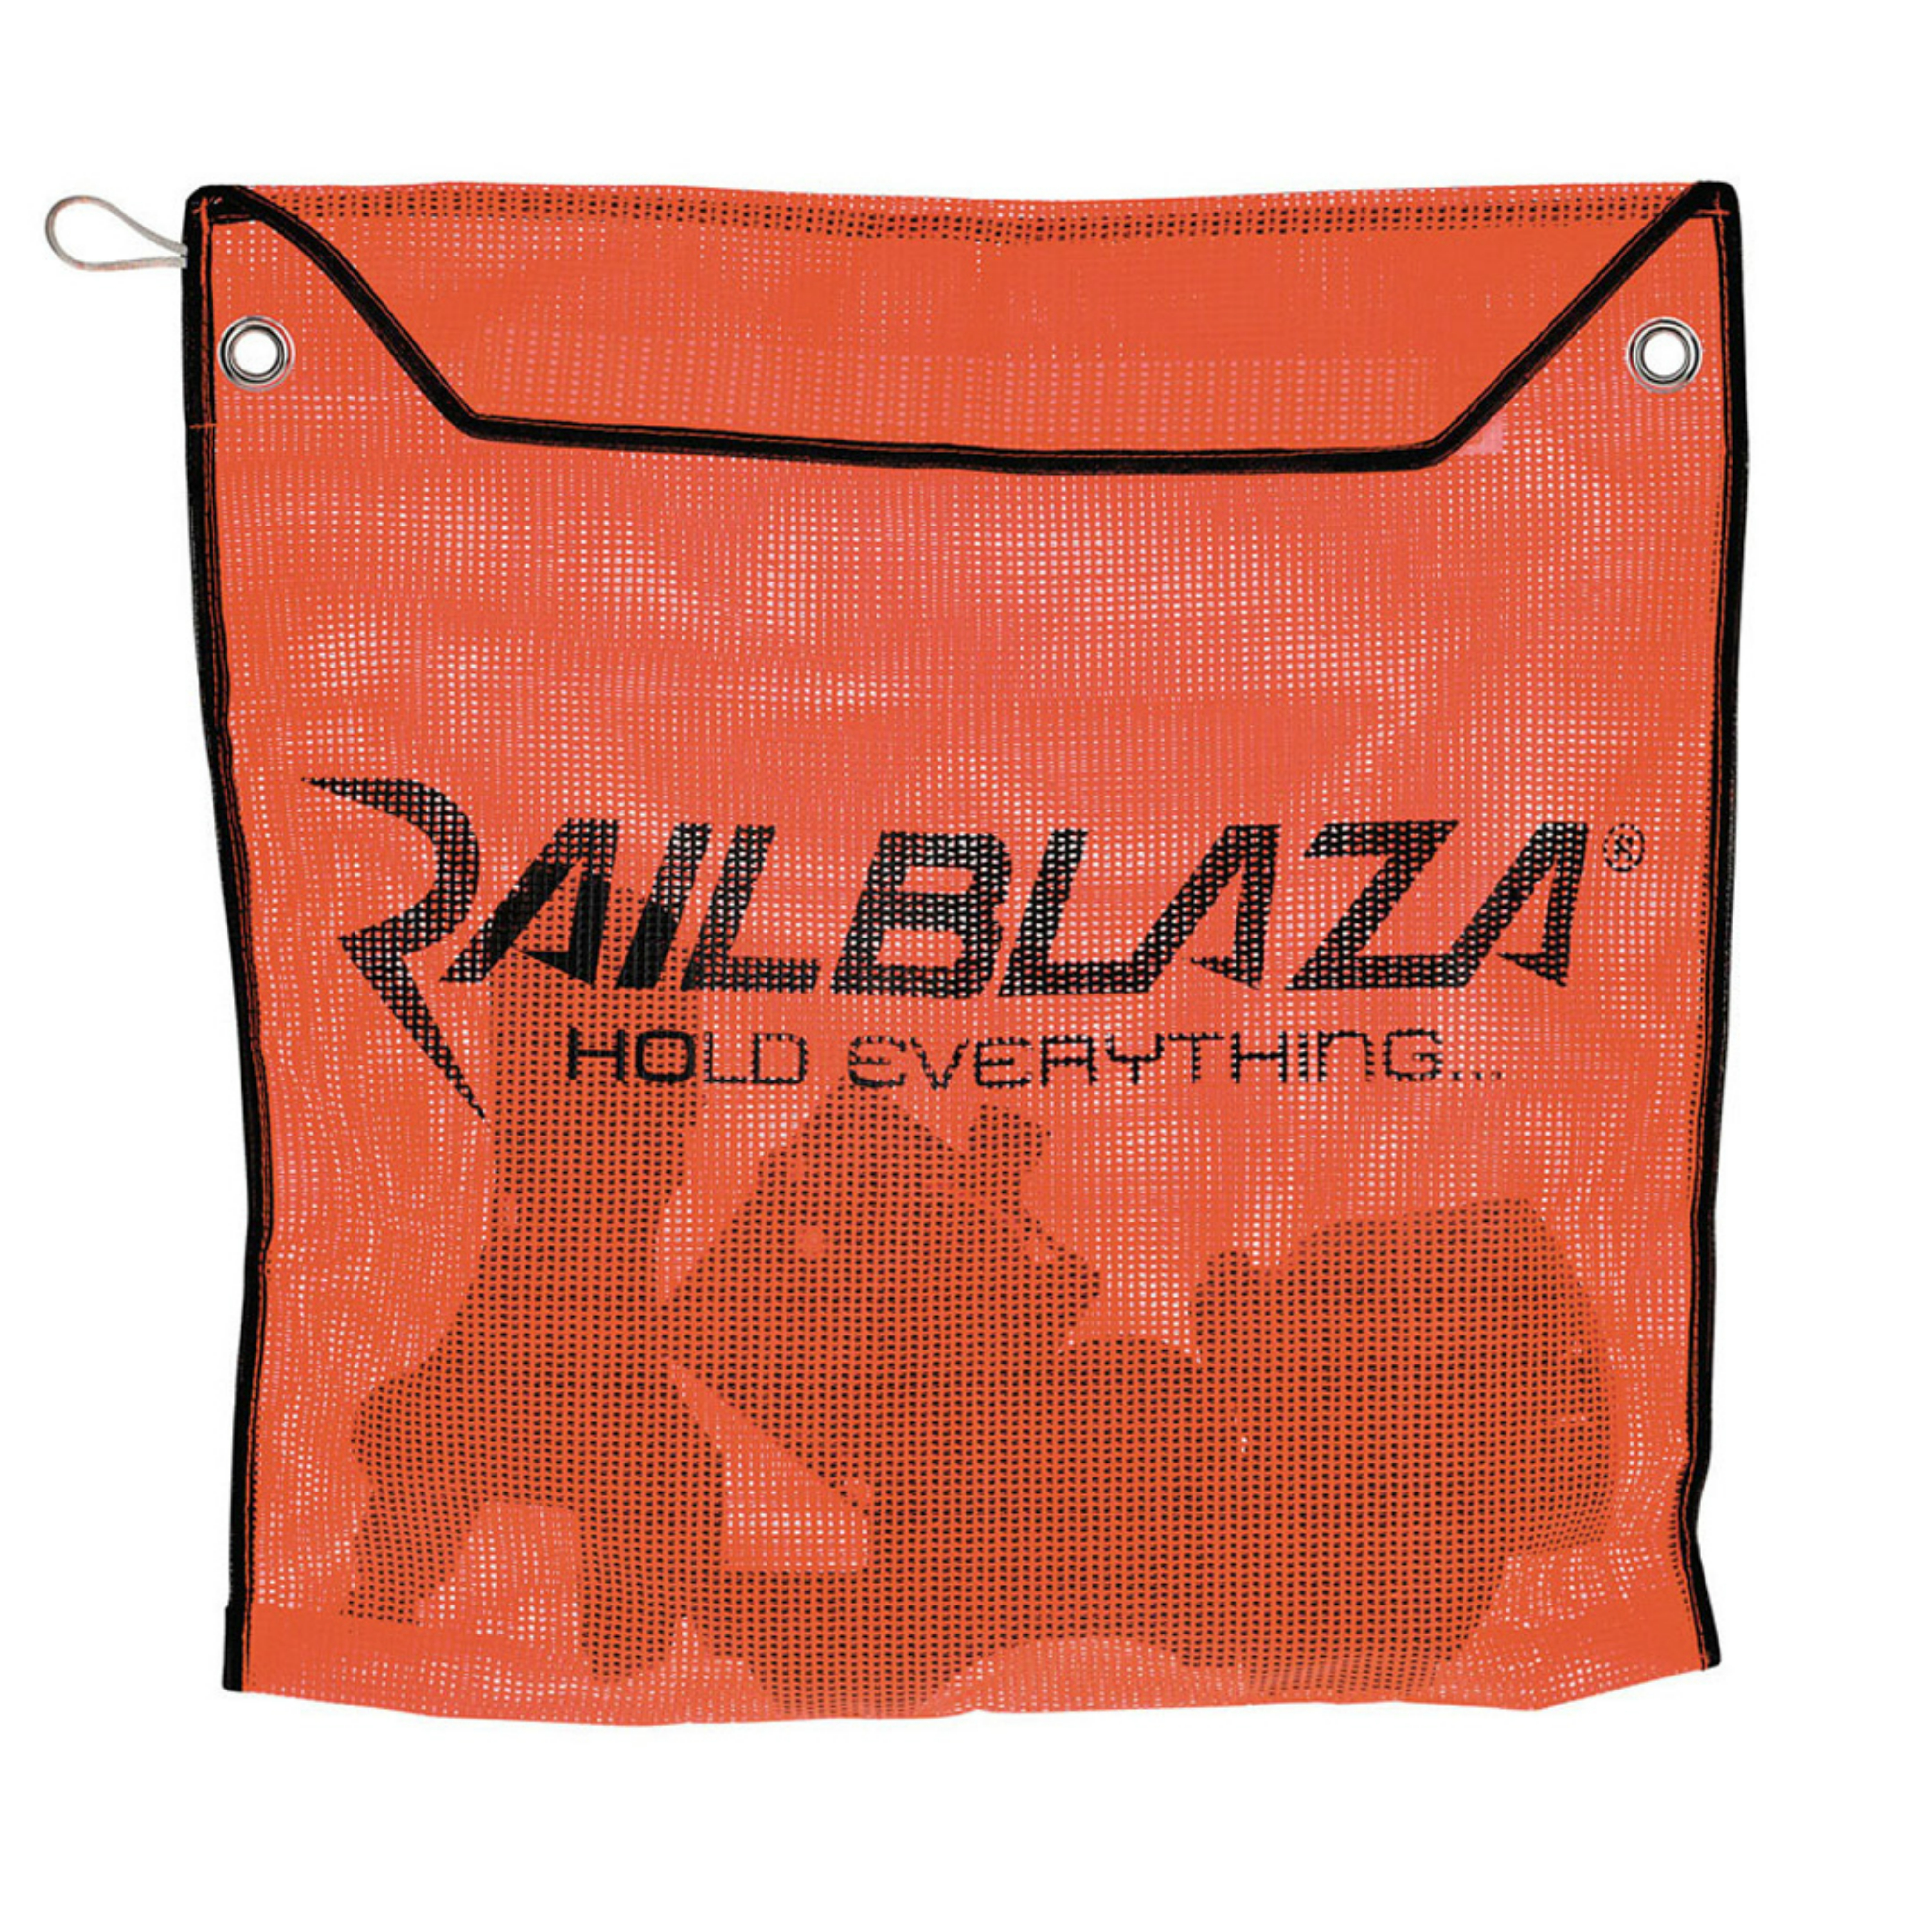 Railblaza-02406881|CWS Carry-Wash & Store Bag|450x450mm|For Boat & Kayak Parts